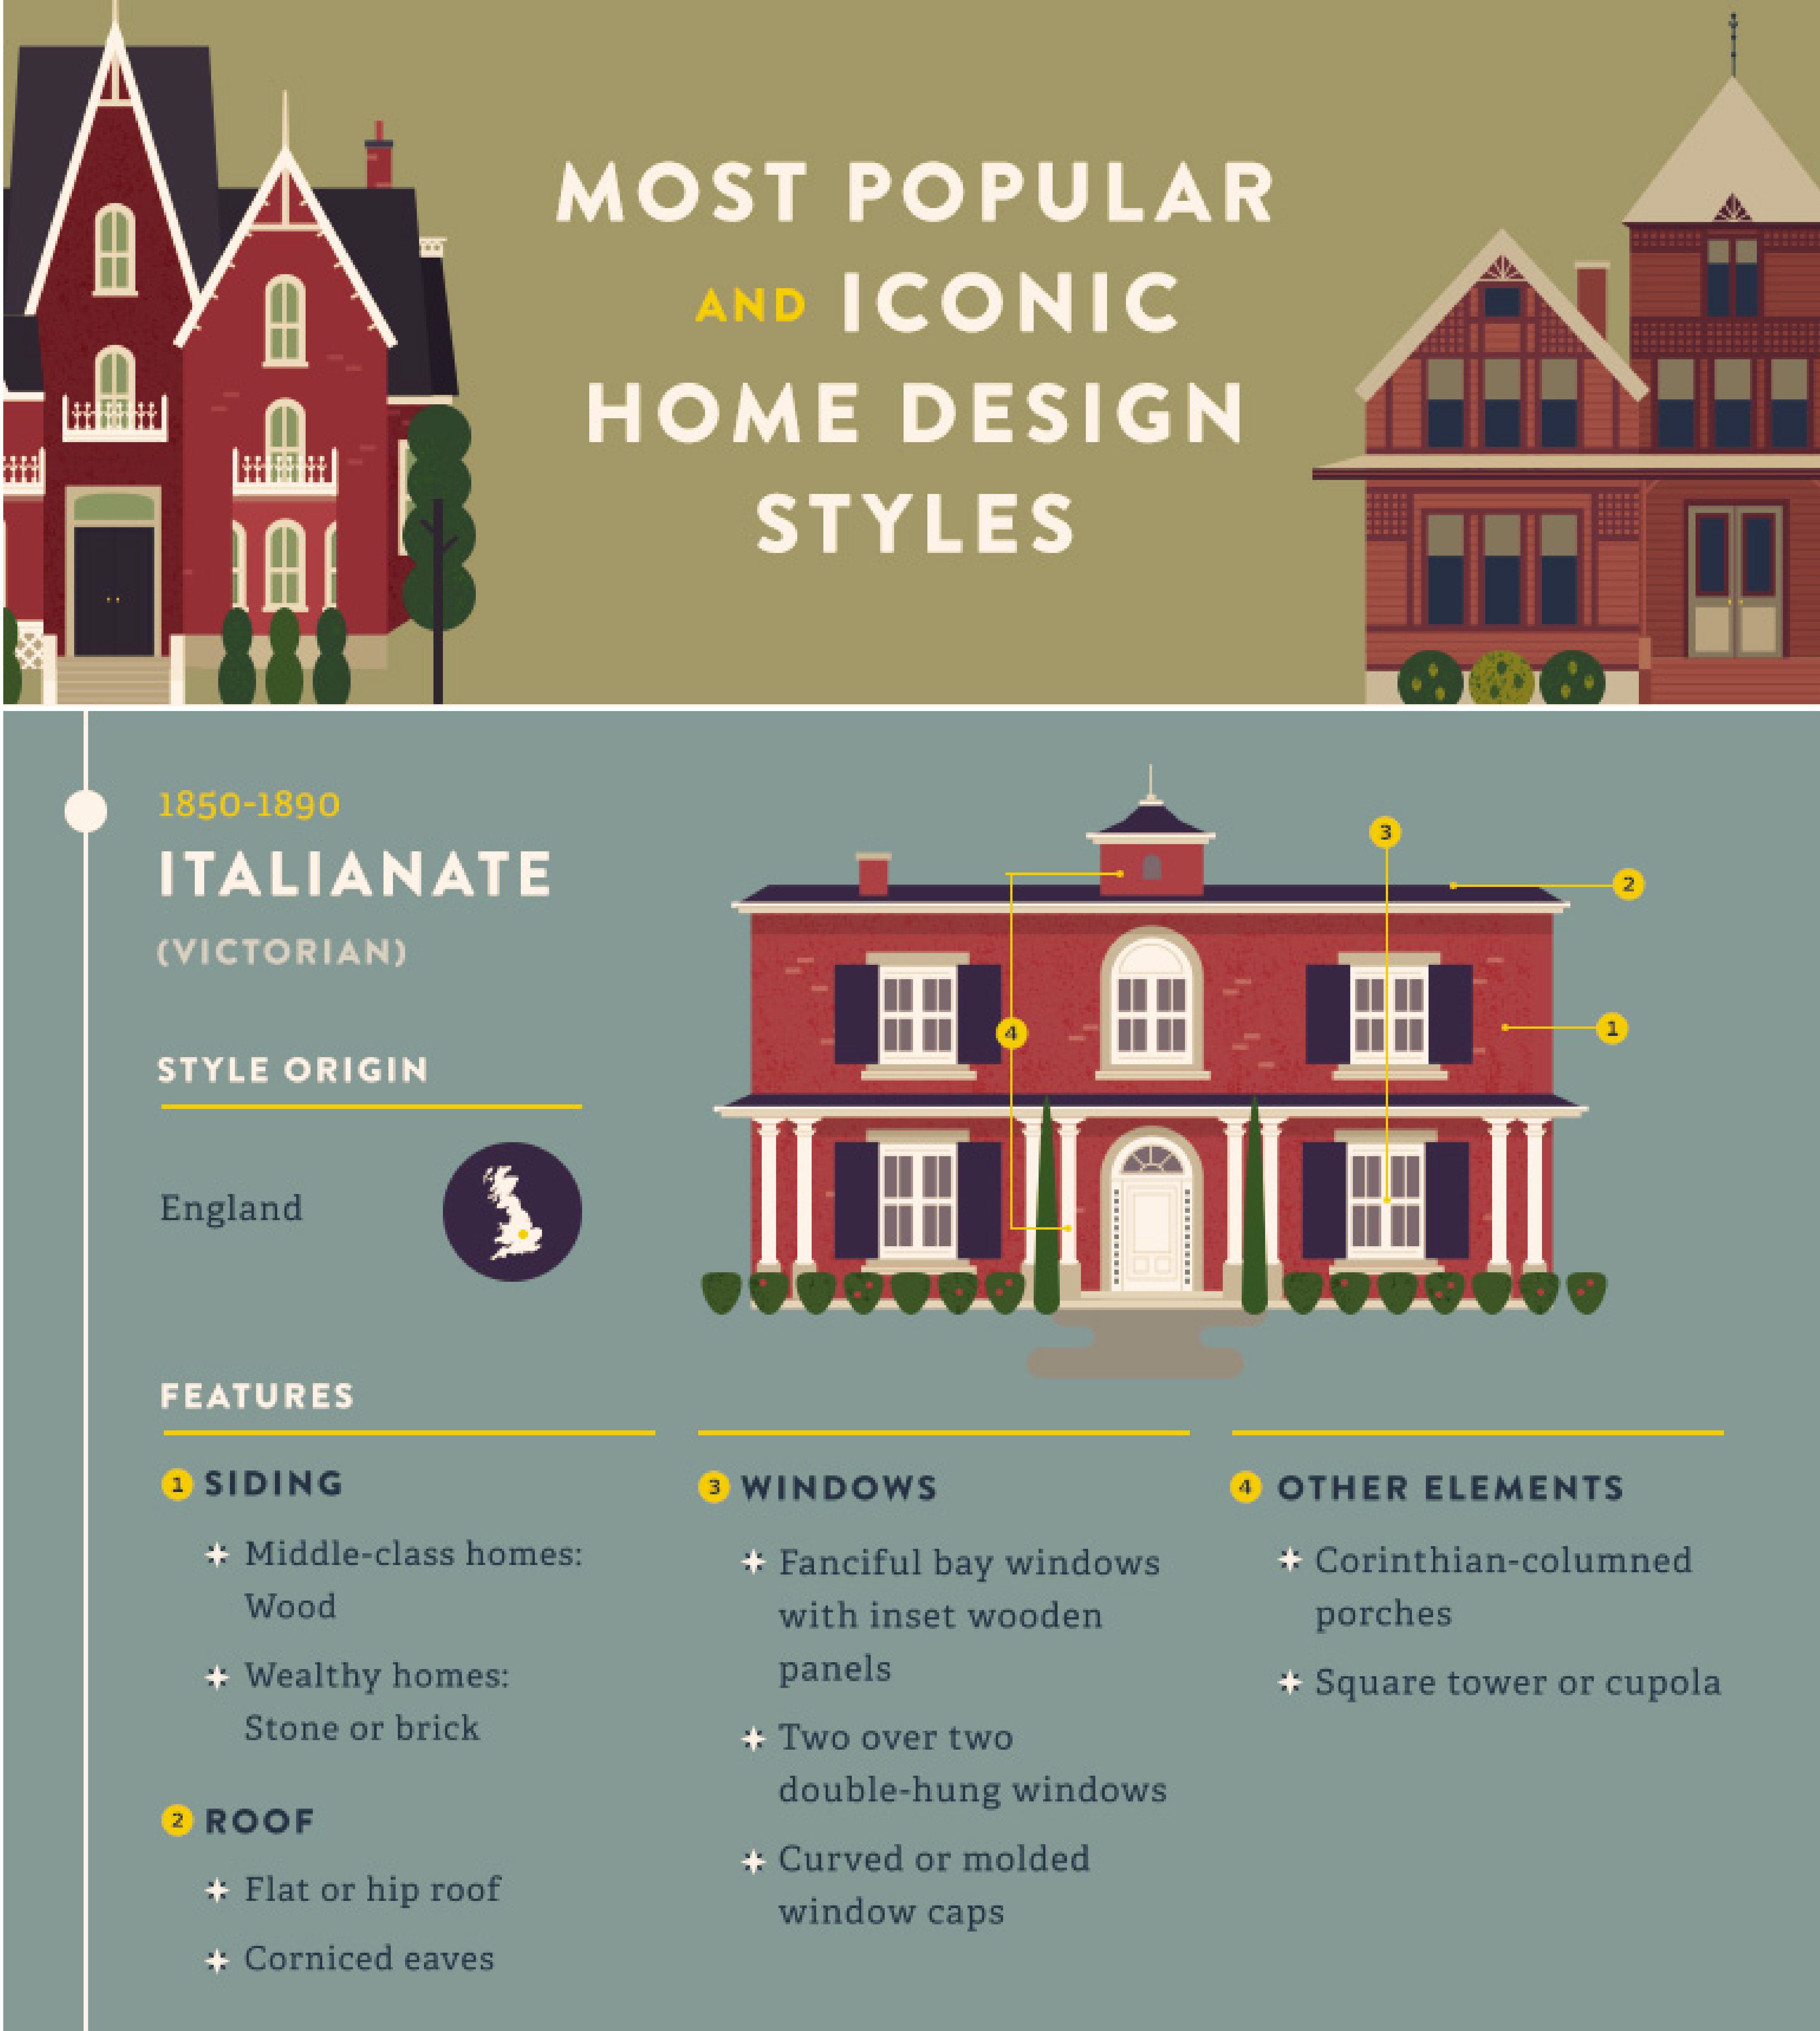 28 most popular home decorating blogs matt and lentil most popular home decorating blogs most popular and iconic home design styles